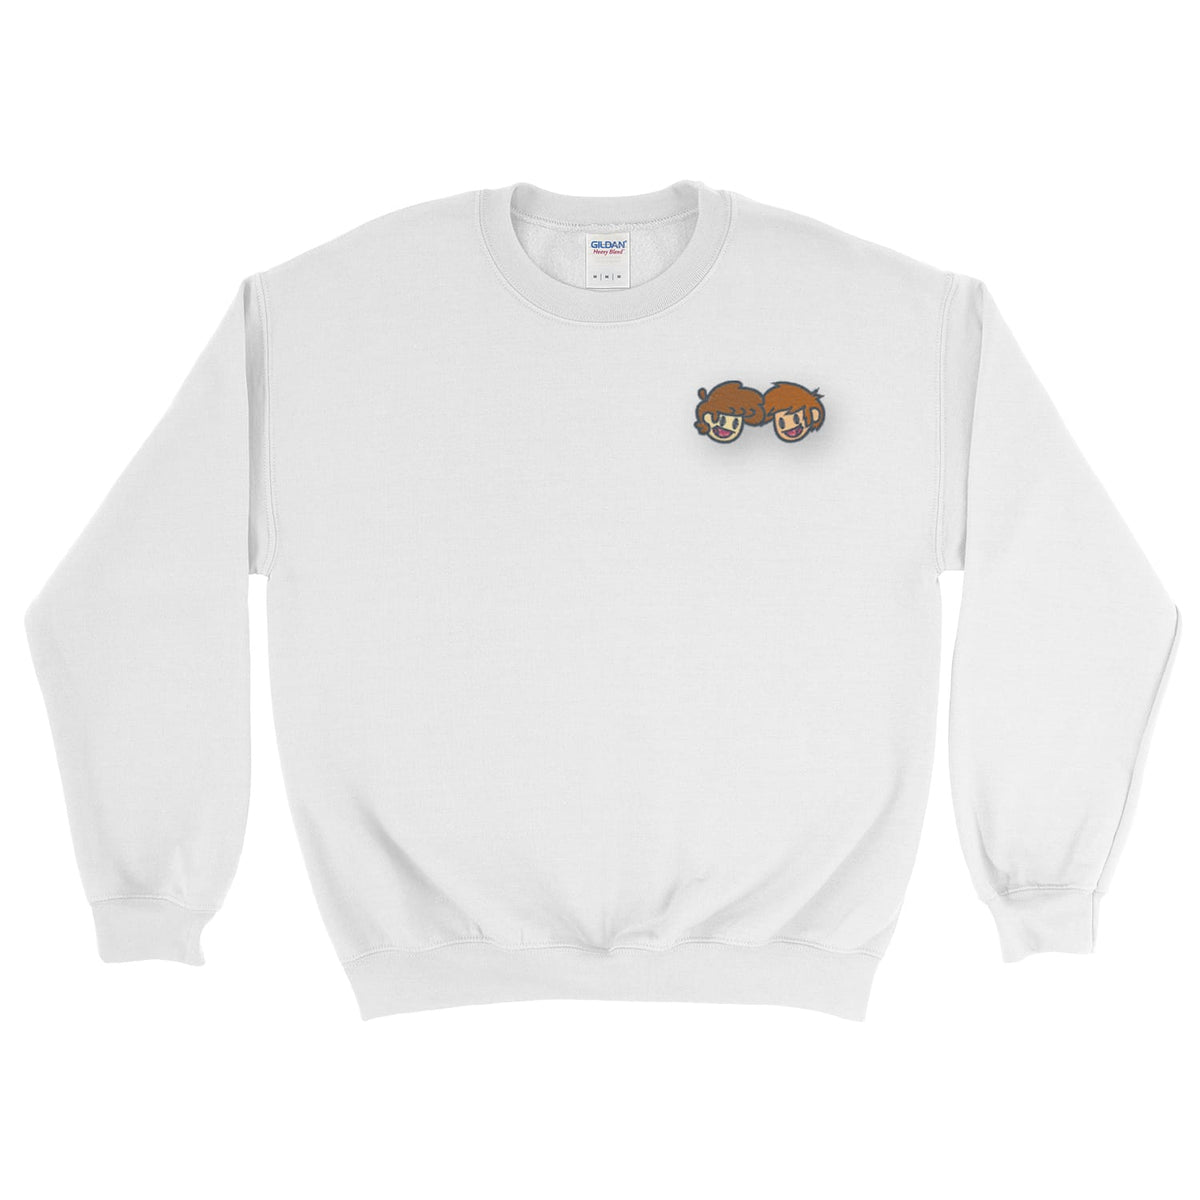 BPTV Faces Sweatshirt